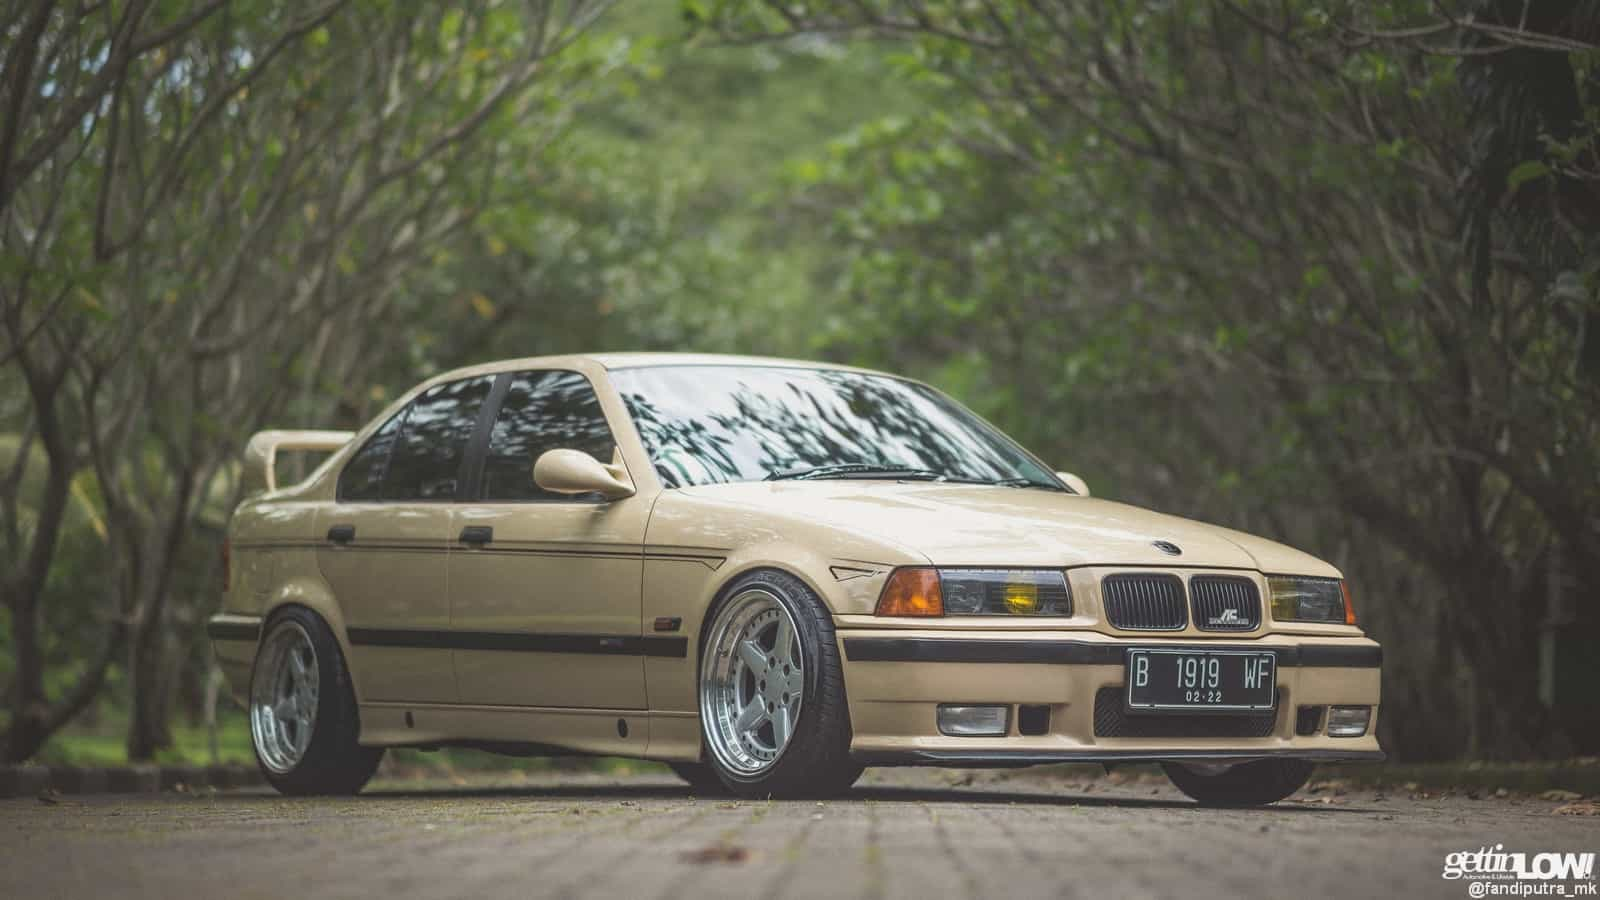 Doddy Krisnanto: BMW e36-323i 1997 2.3l on Sahara